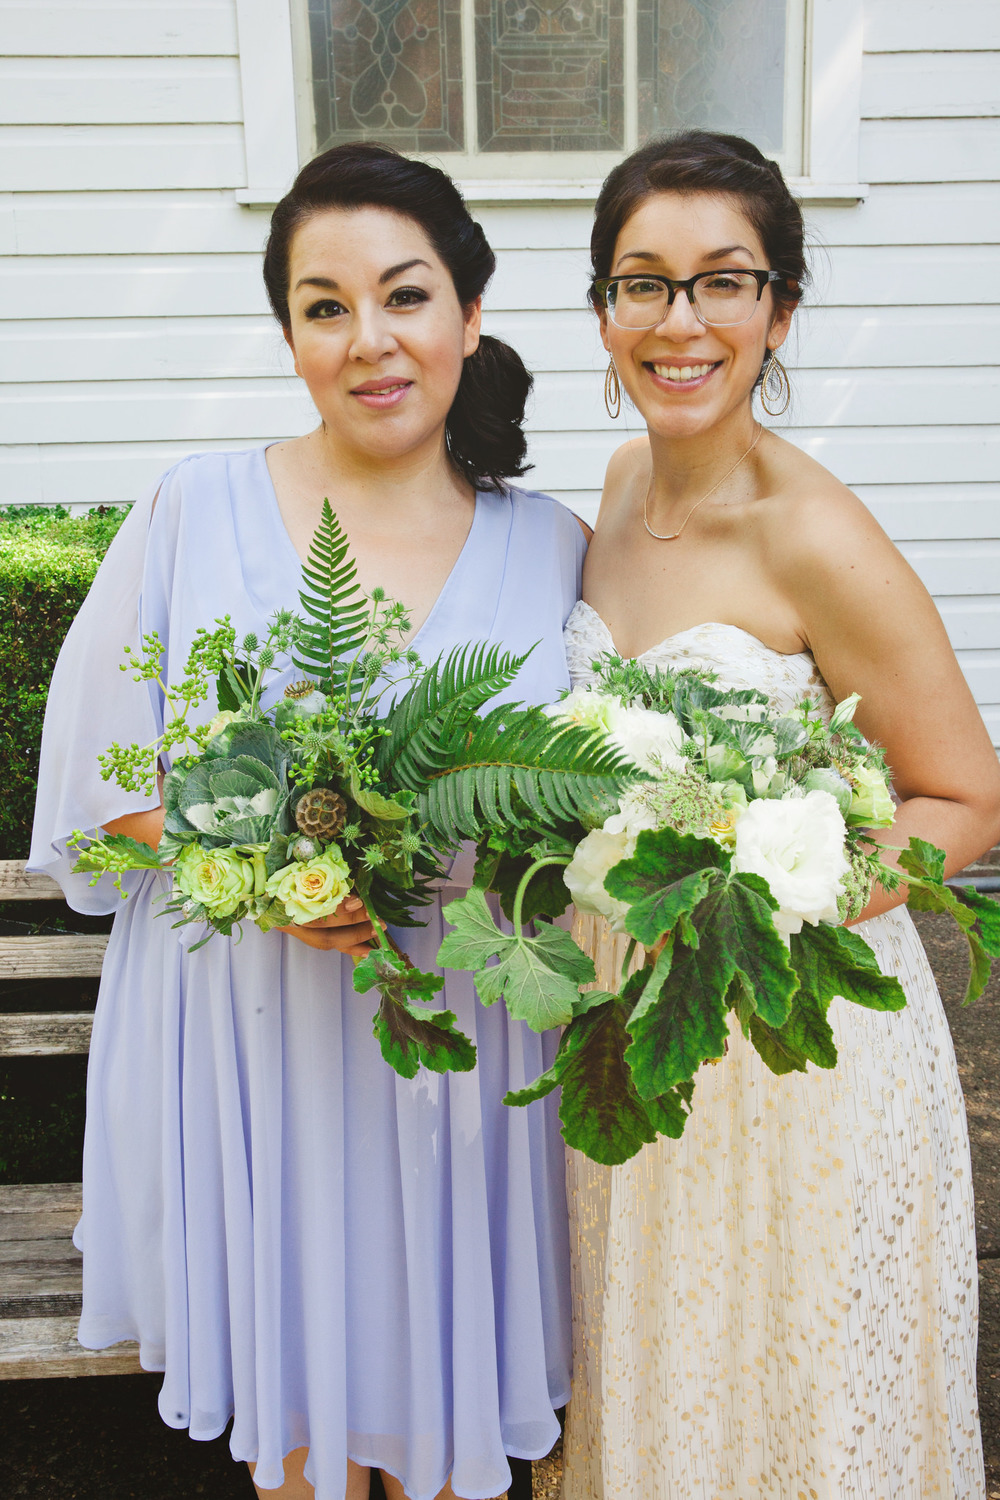 bride-and-maid-bouquets.jpg